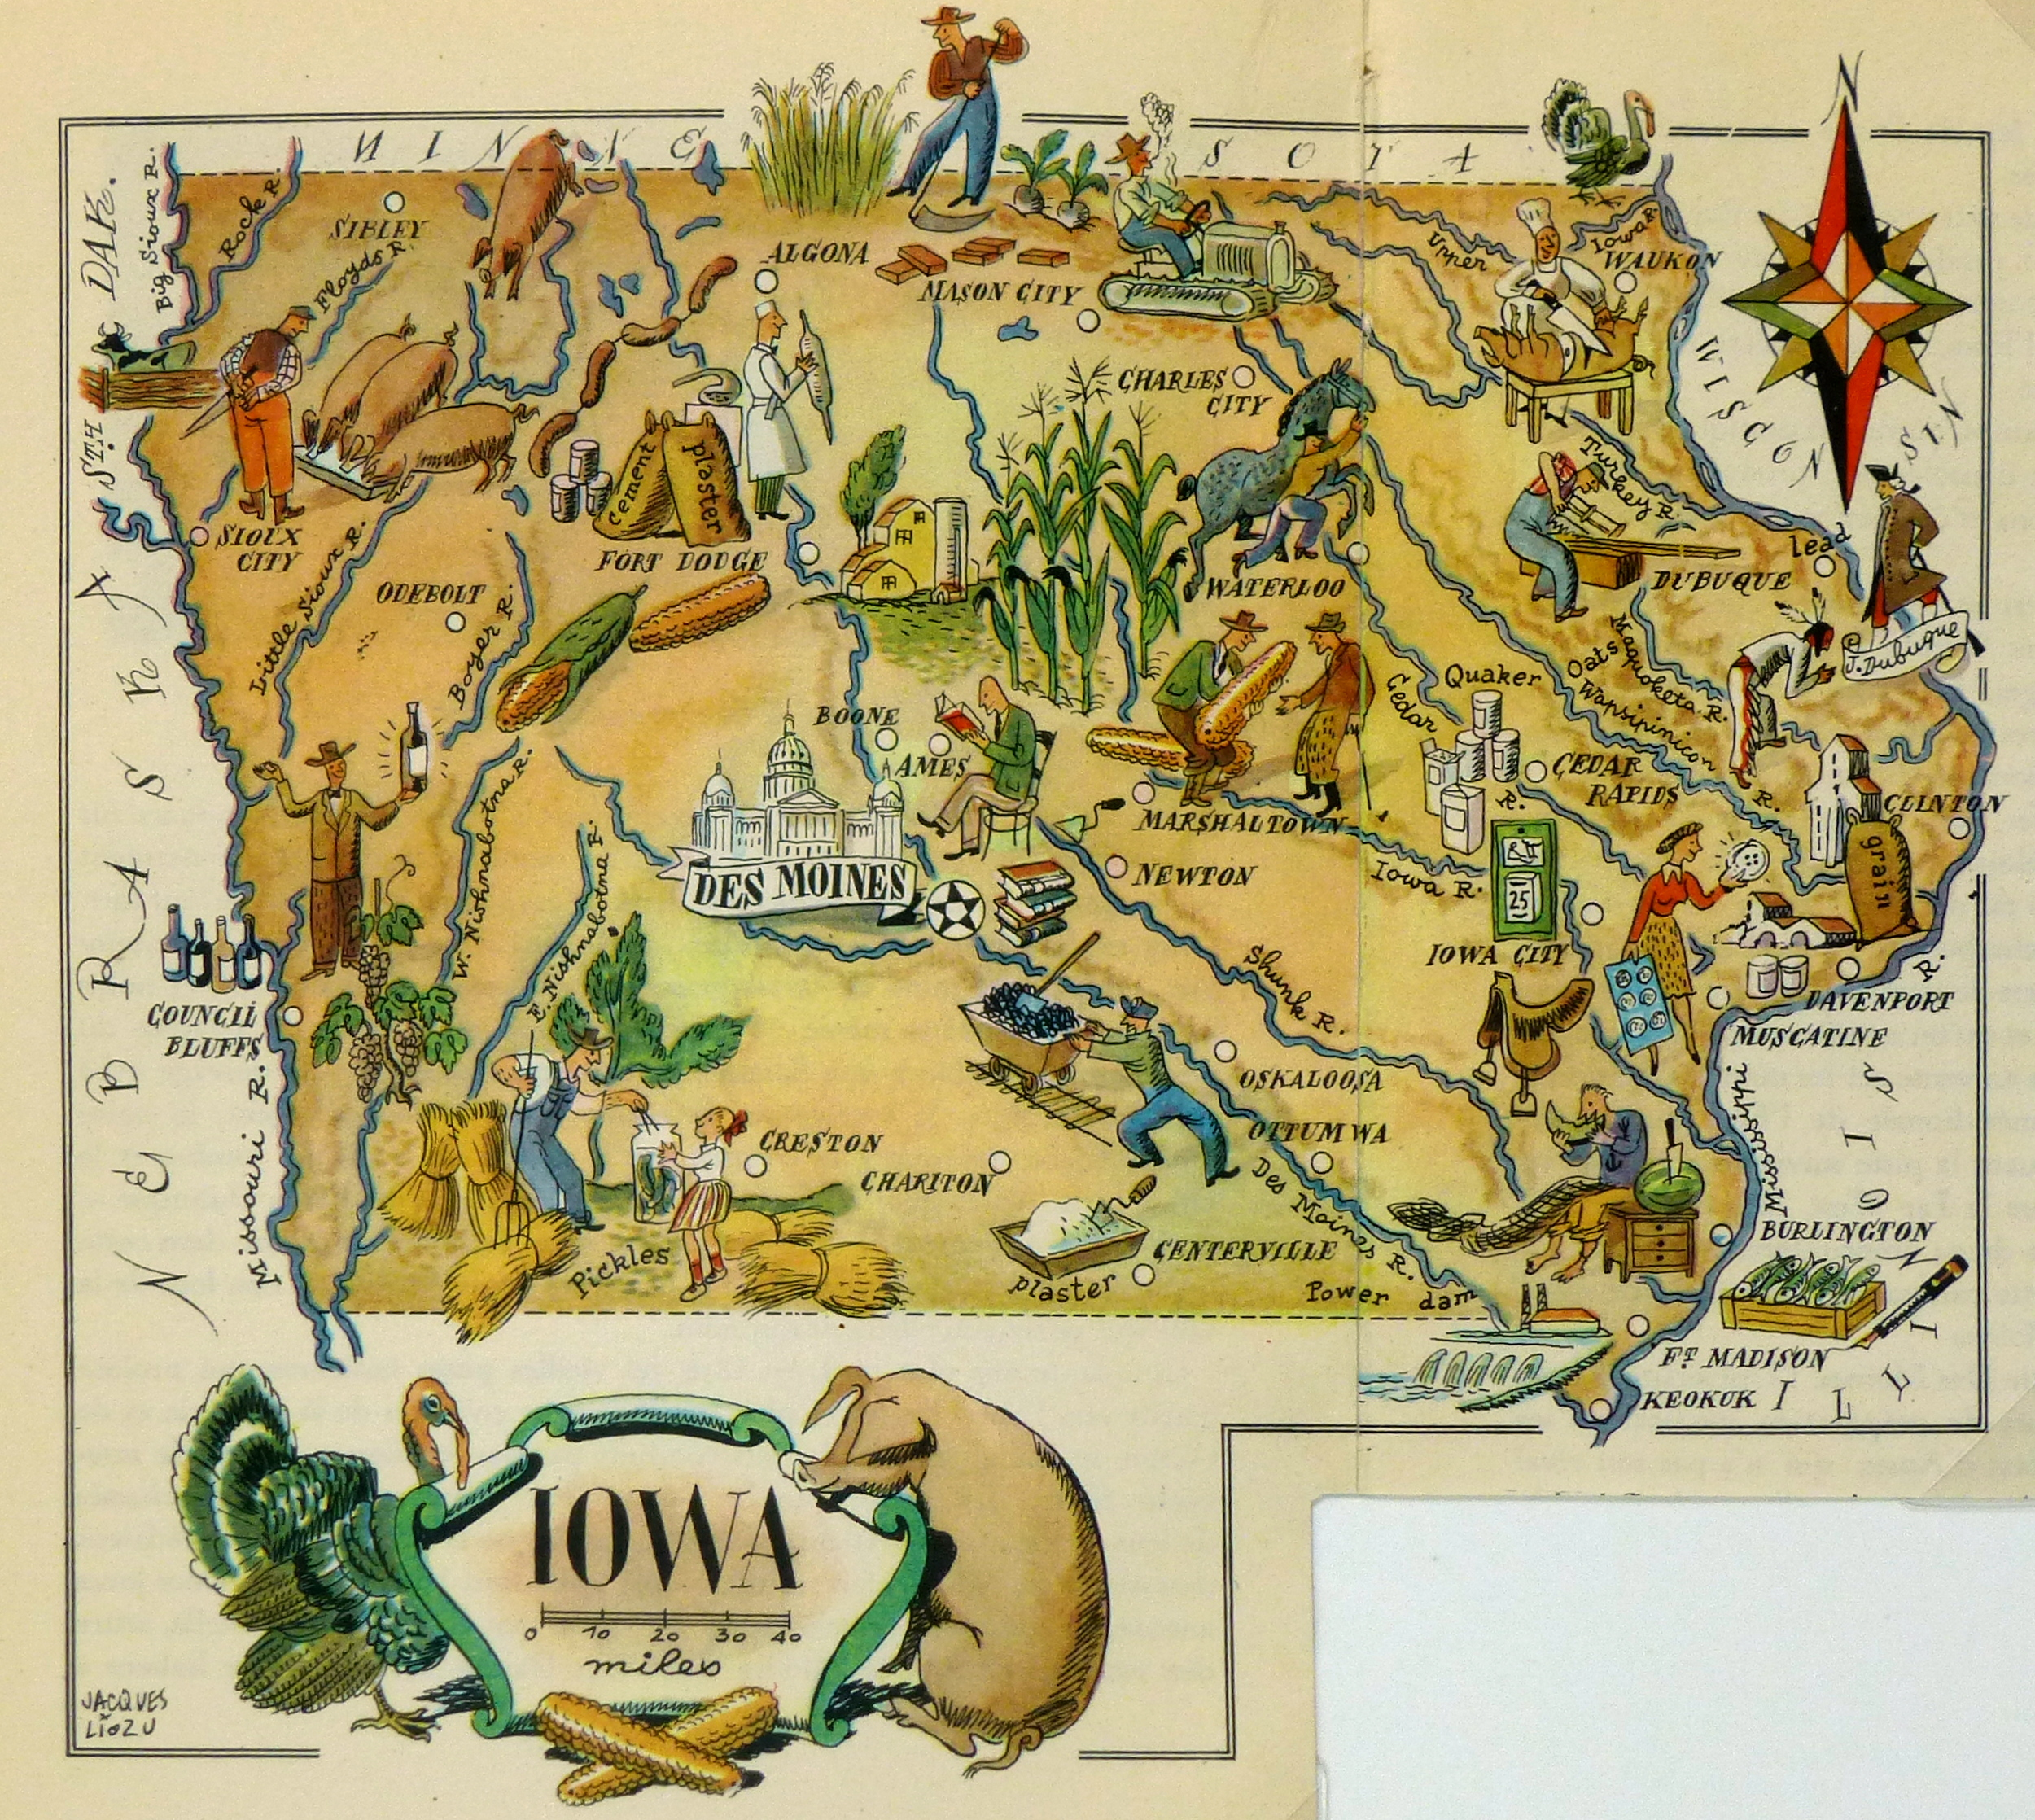 Iowa Pictorial Map 1946